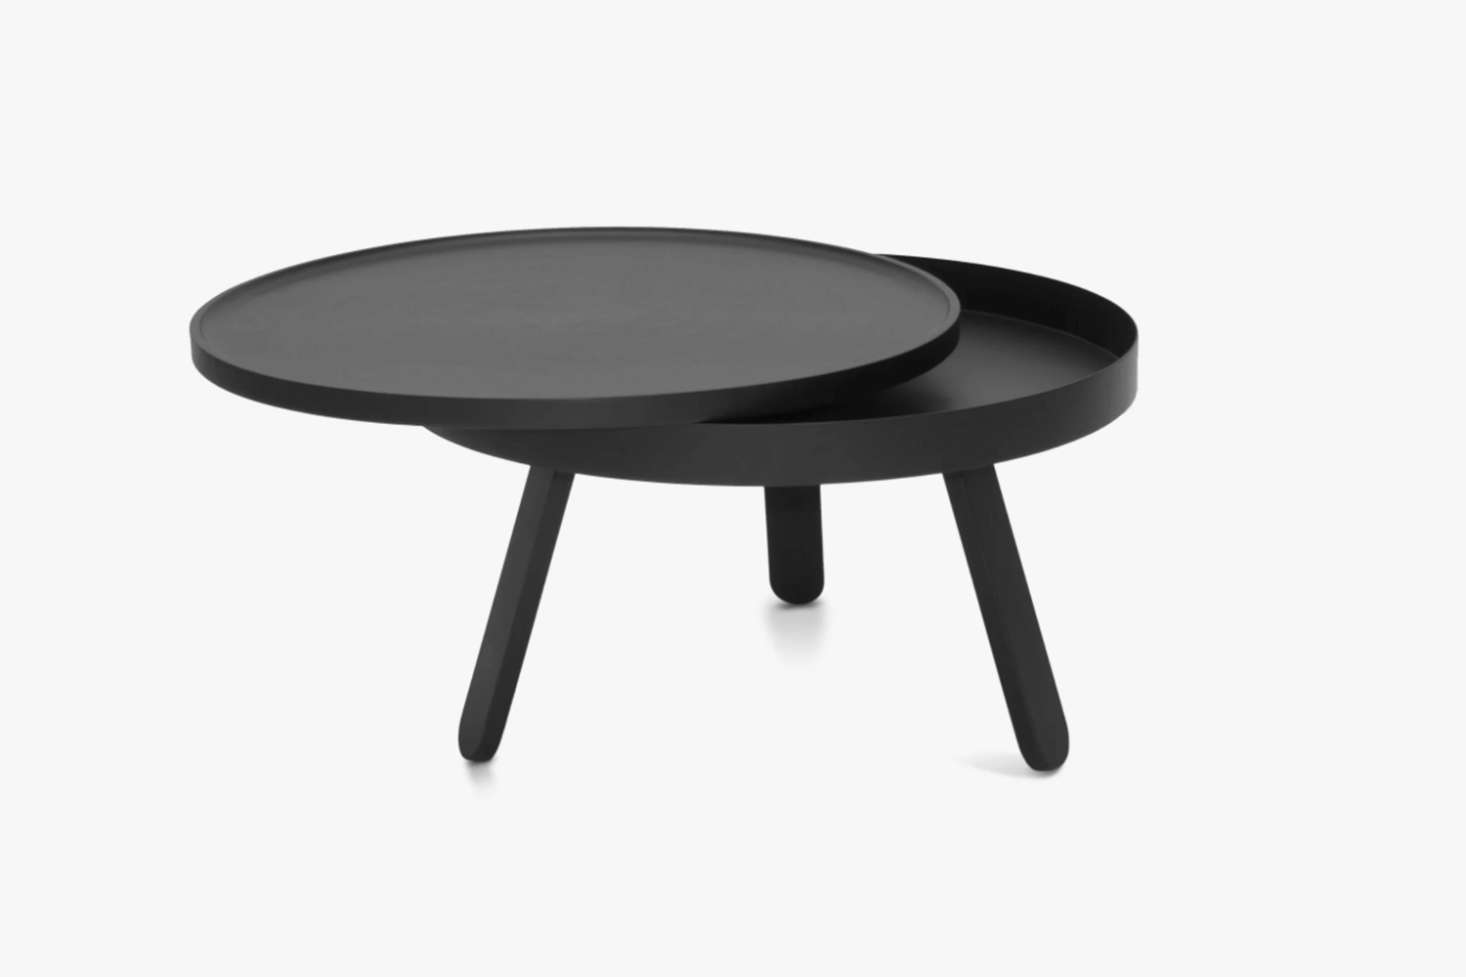 The Woodendot Batea M Coffee Table with Storage comes in eight different color combinations (shown in Black/Black Ash) for £251.99 at Clippings.